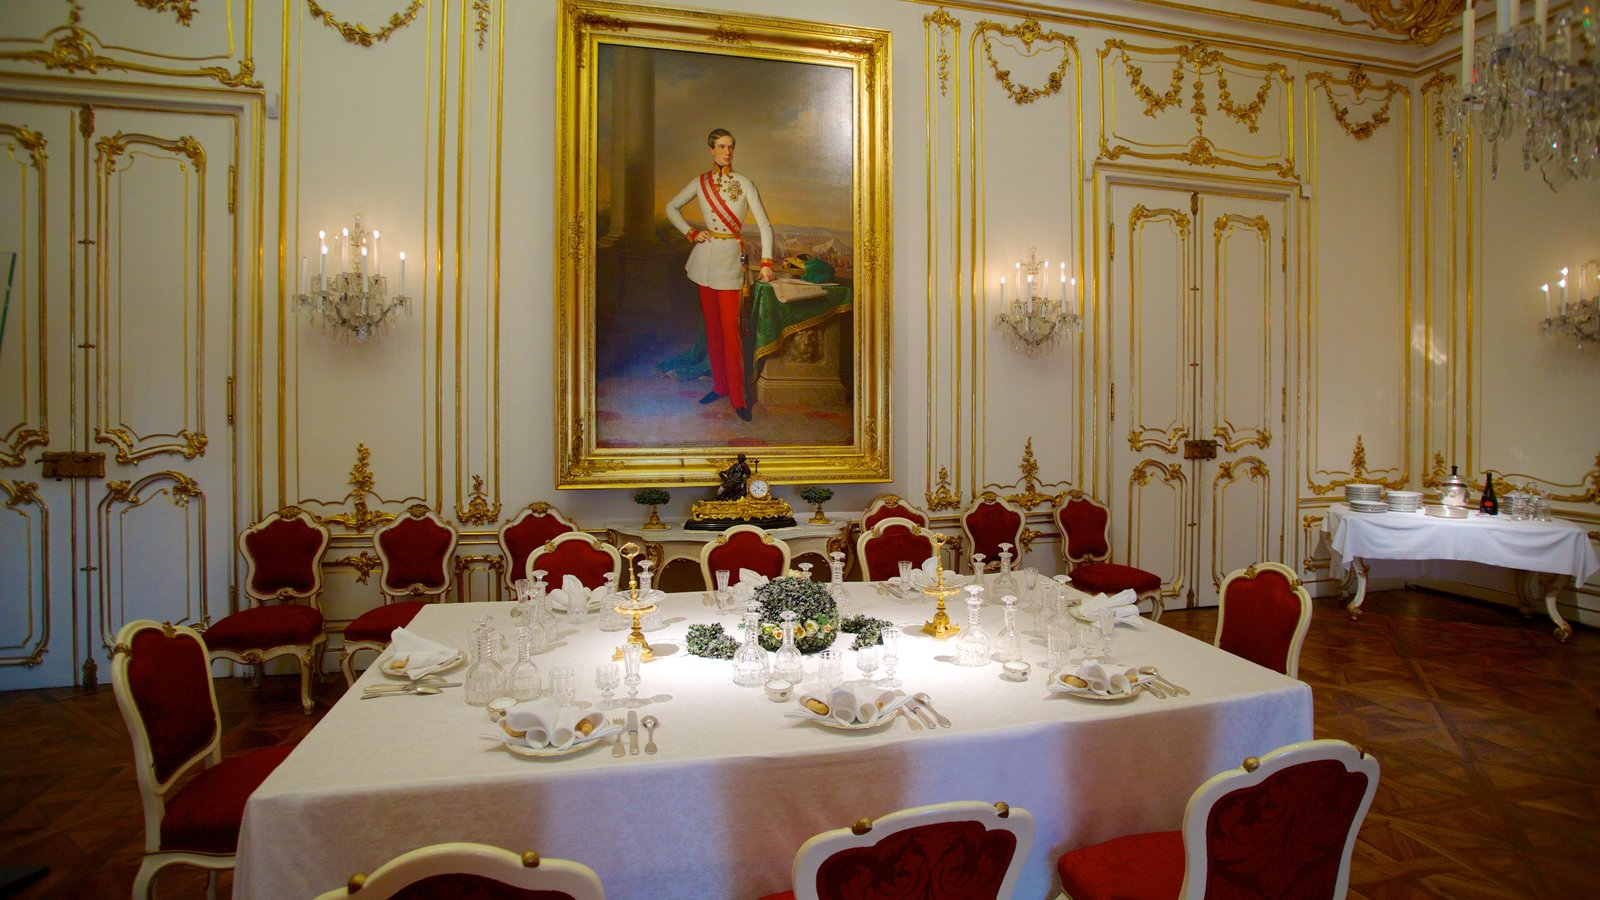 Attraction pictures view images of schoenbrunn palace - Foto foto interior ...